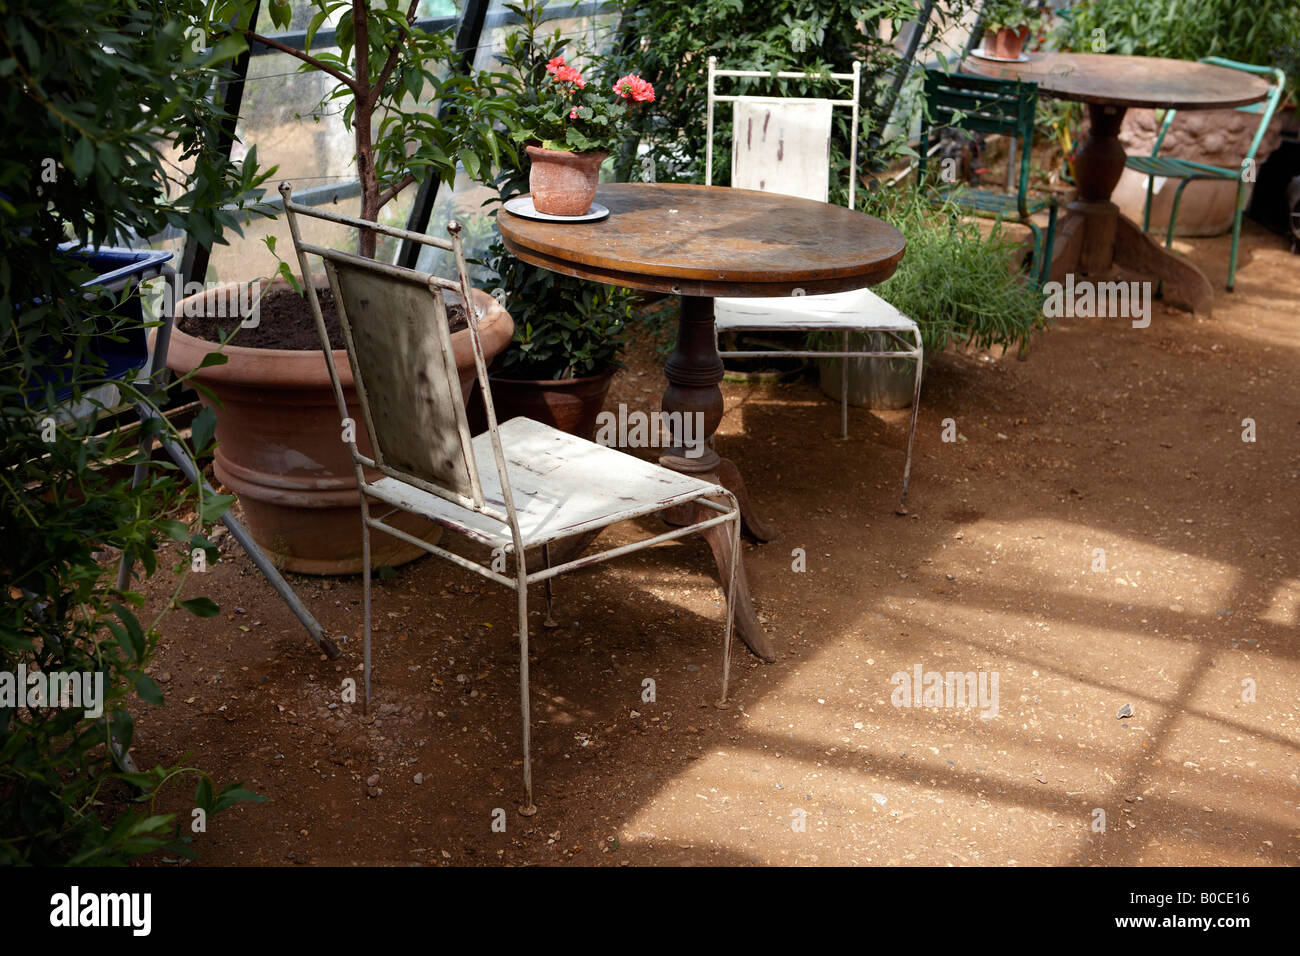 Antique Garden Furniture, In A Greenhouse.   Stock Image